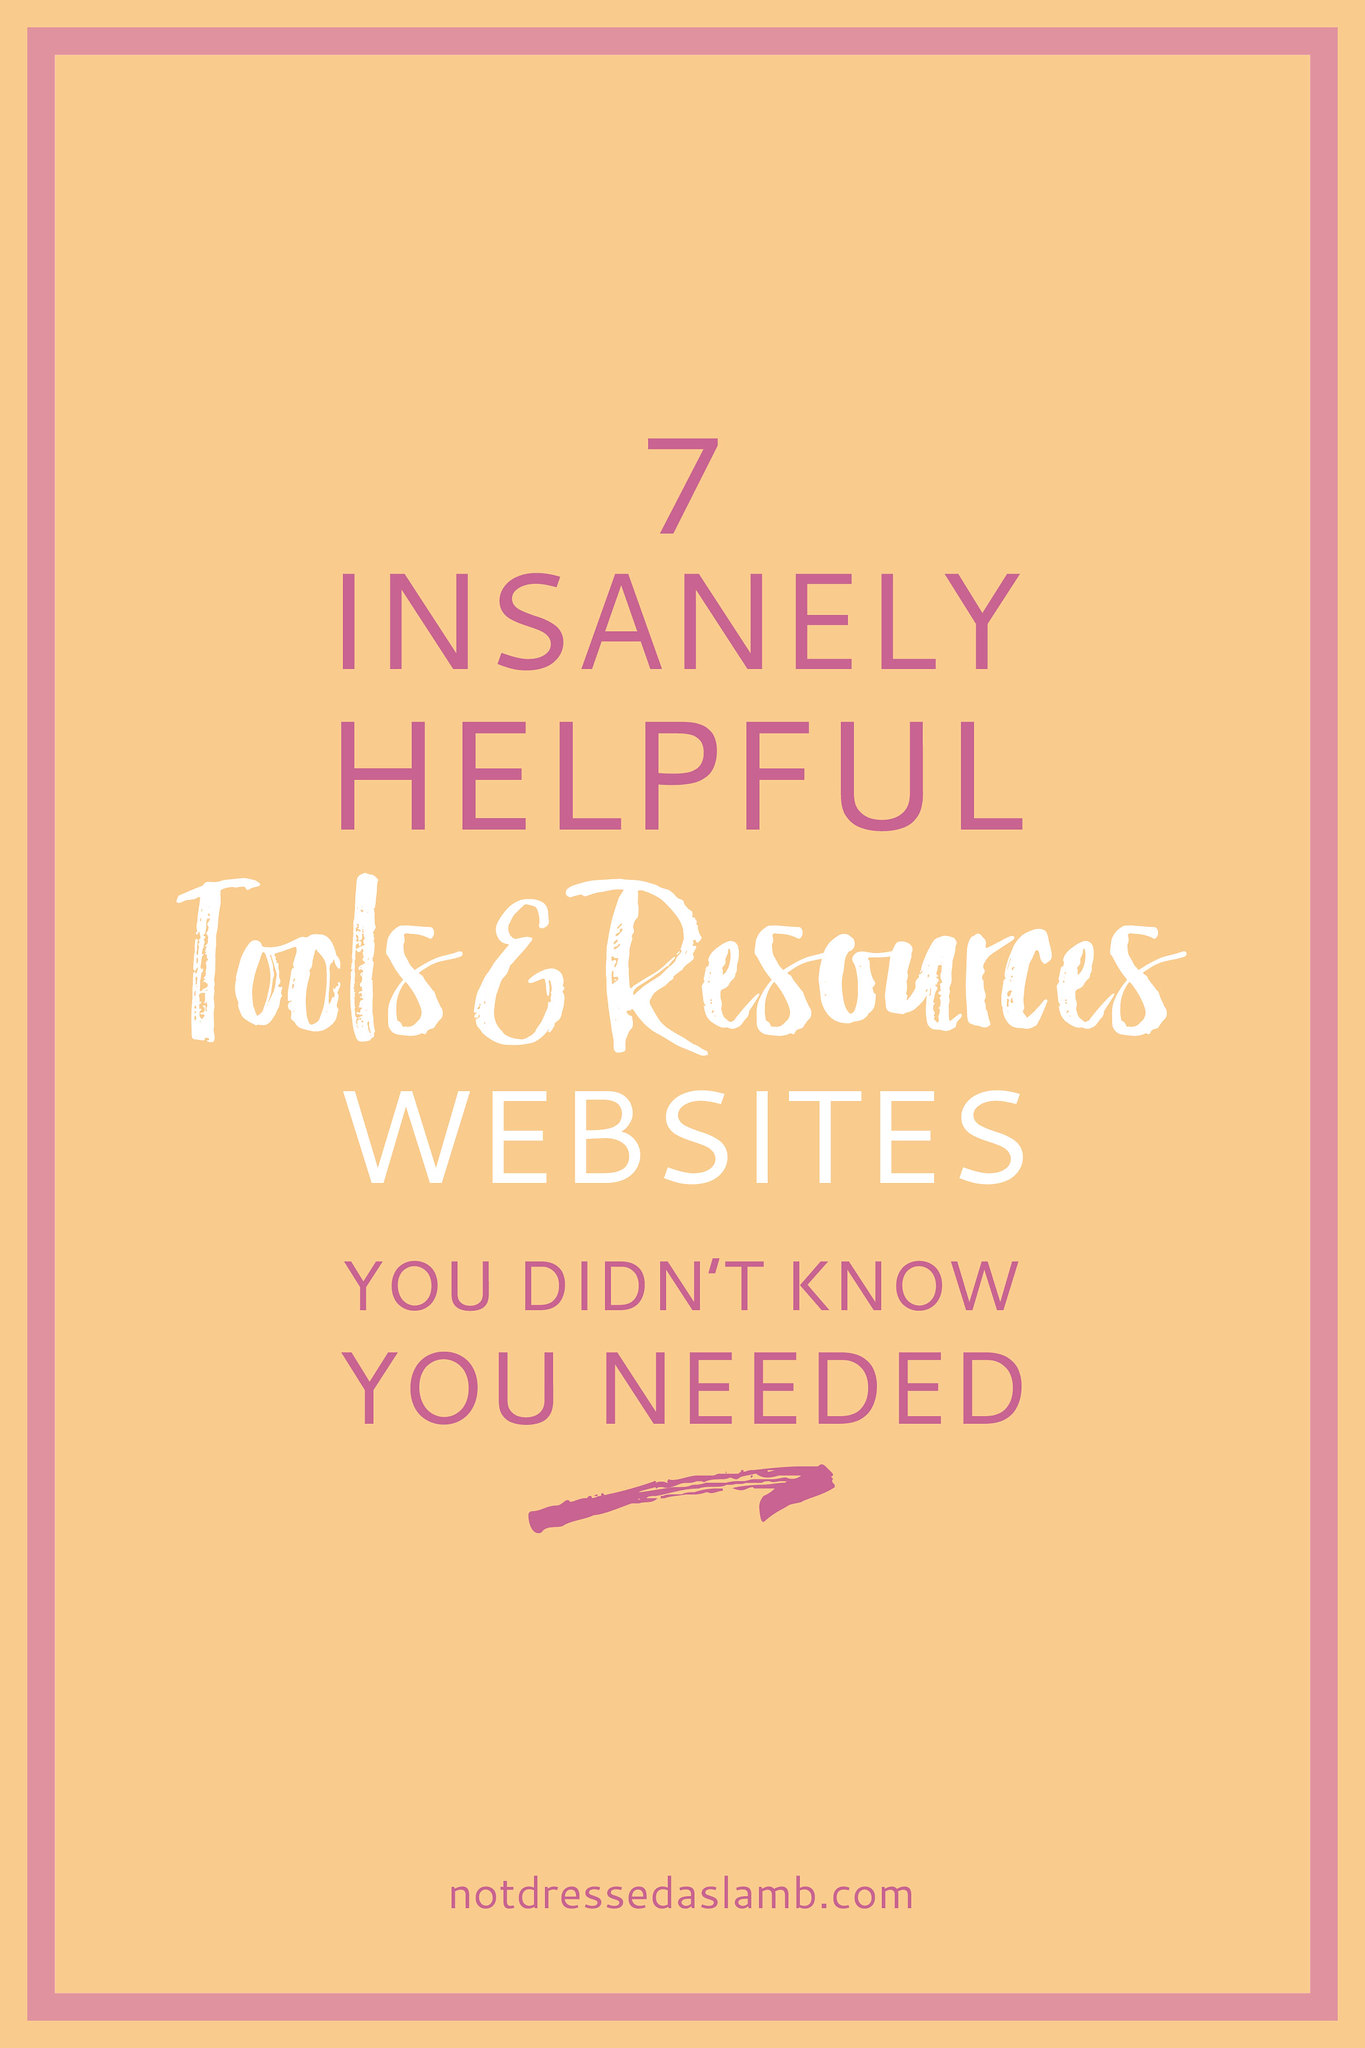 Blogging Tips | 7 Insanely Helpful Tools and Resources Websites You Didn't Know You Needed